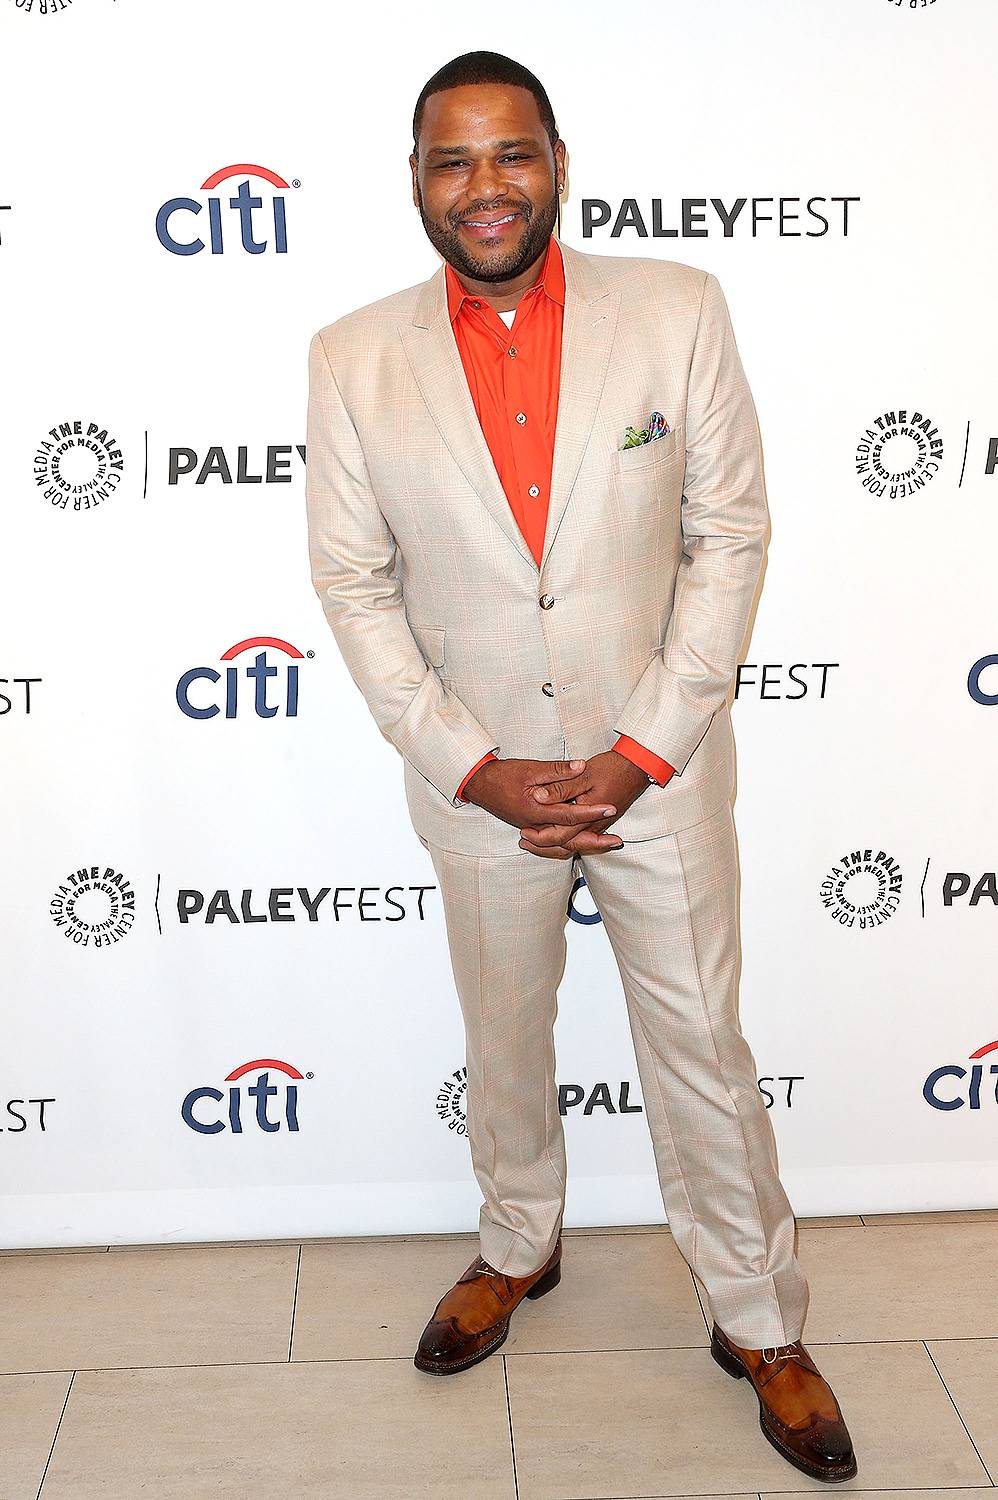 """Anthony Anderson - September 23, 2014 - Funnyman Anthony Anderson stopped by to talk new TV show """"Black-ish."""" Watch a clip now!  (Photo: Frederick M. Brown/Getty Images)"""